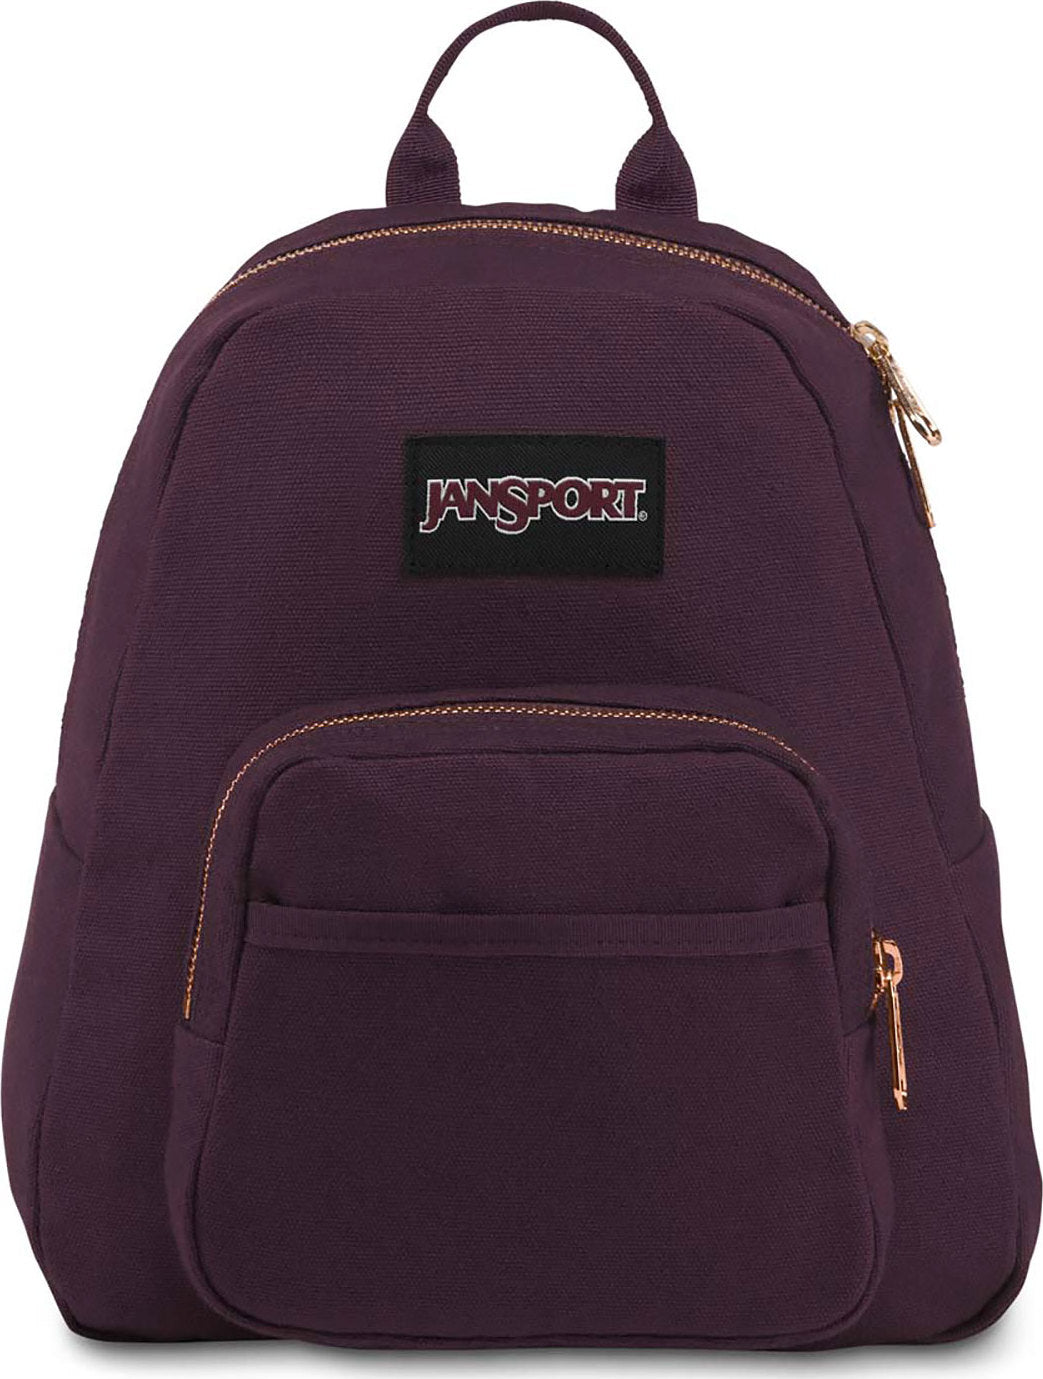 2bab6afa82a Jansport Half Pint Fx 10l Mini Backpack | The Last Hunt